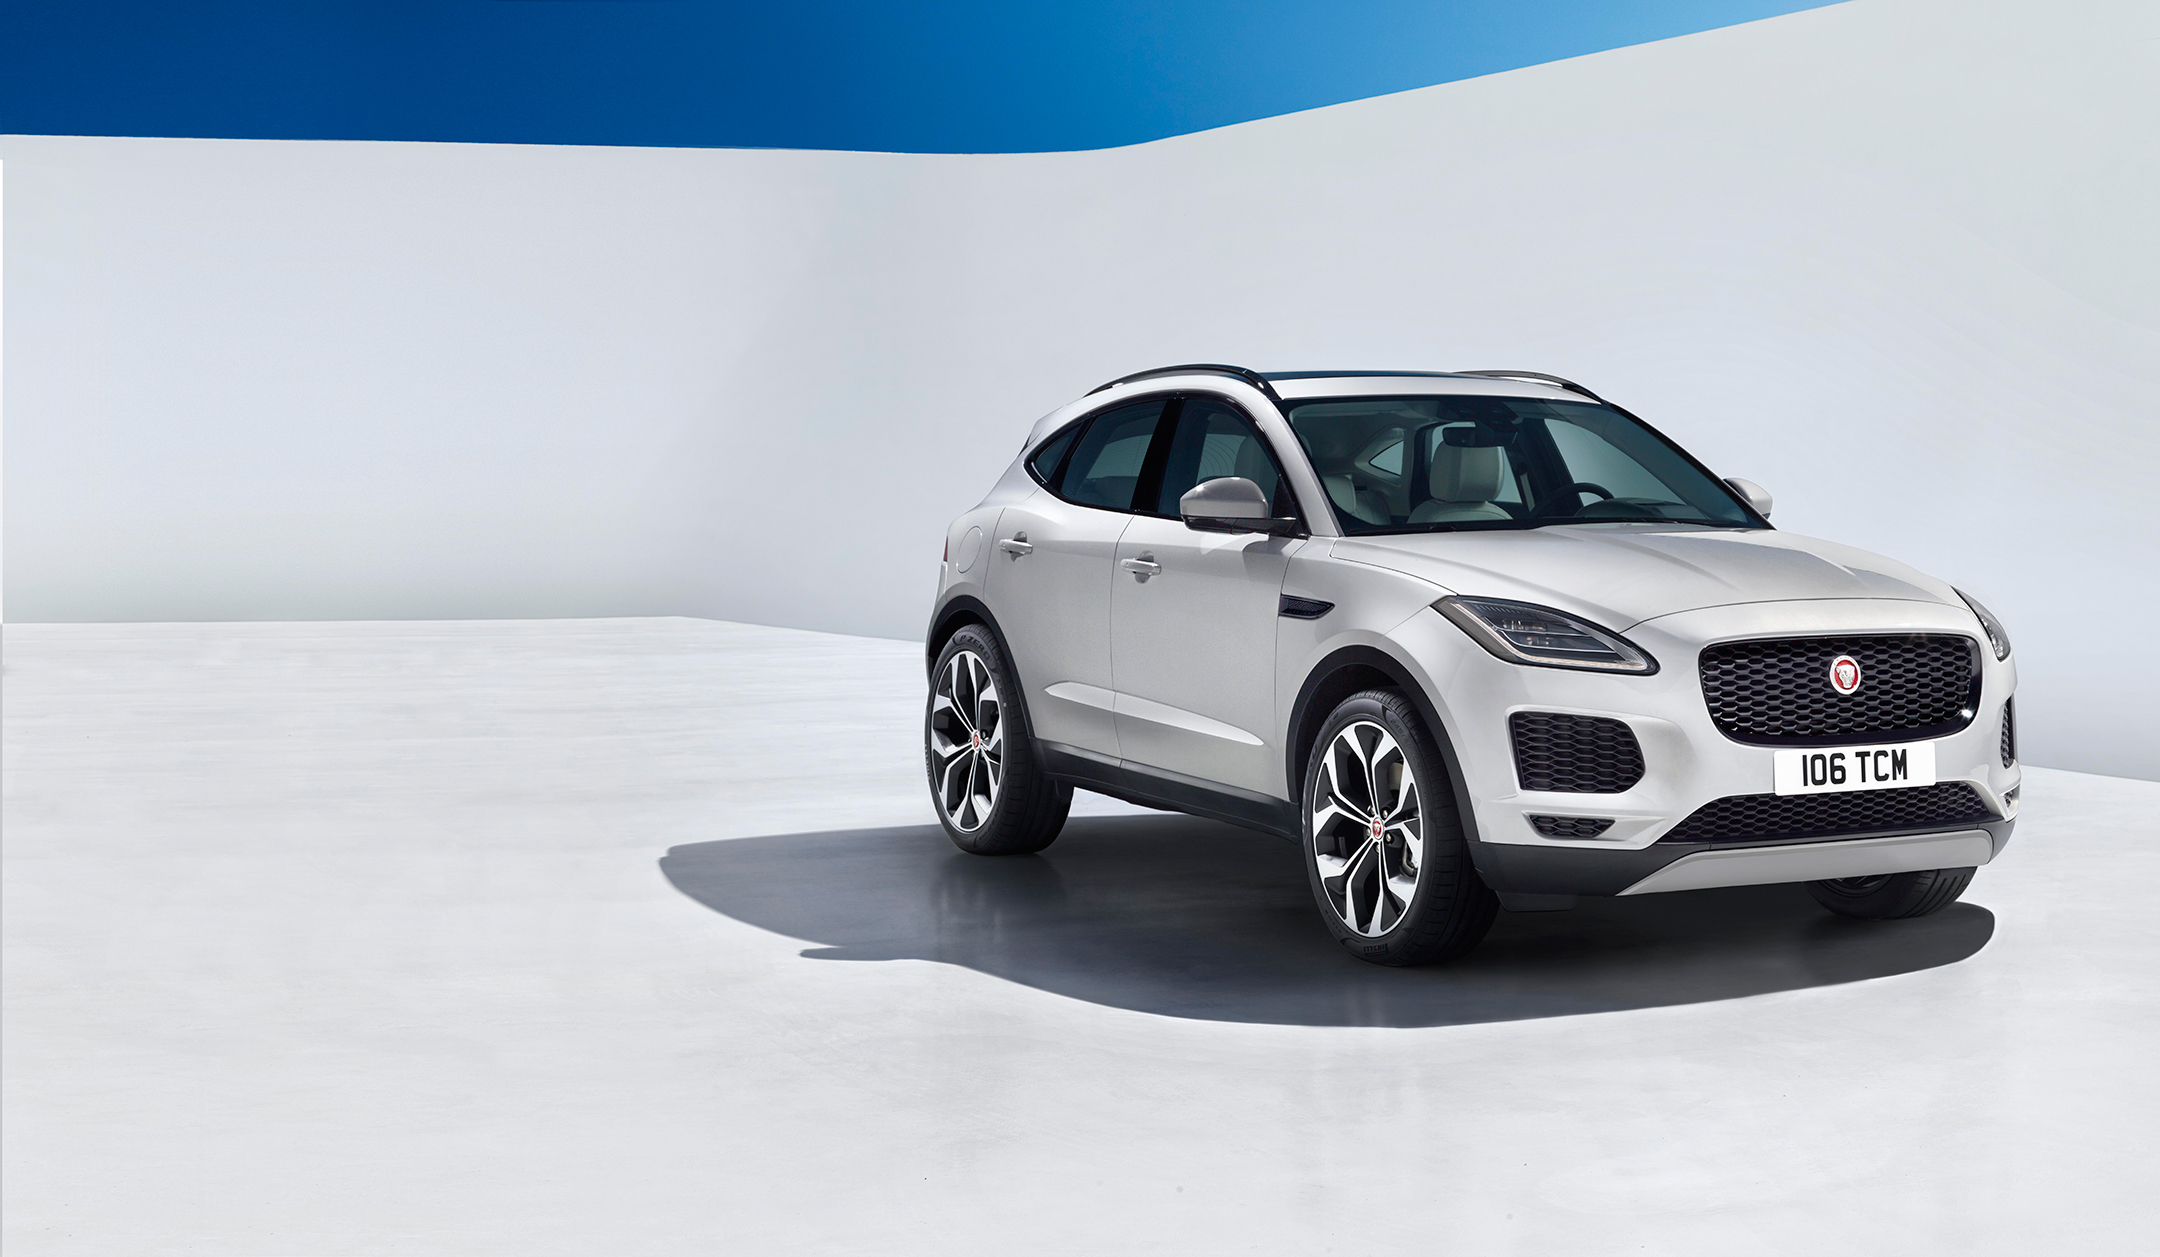 Jaguar E-PACE - 2017 - front side-face